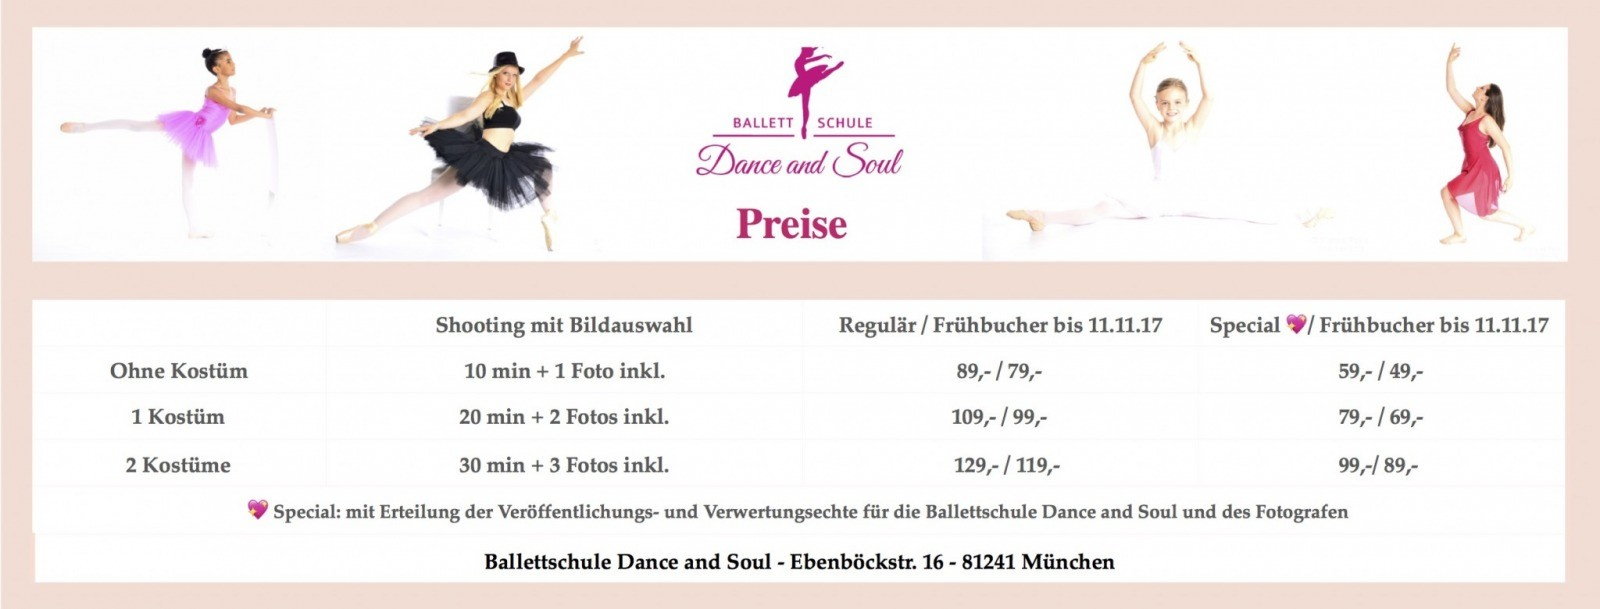 Professionelles Tanz - Fotoshooting, Ballettschule Dance and Soul, Fotoshooting 26. November 2017, Preise